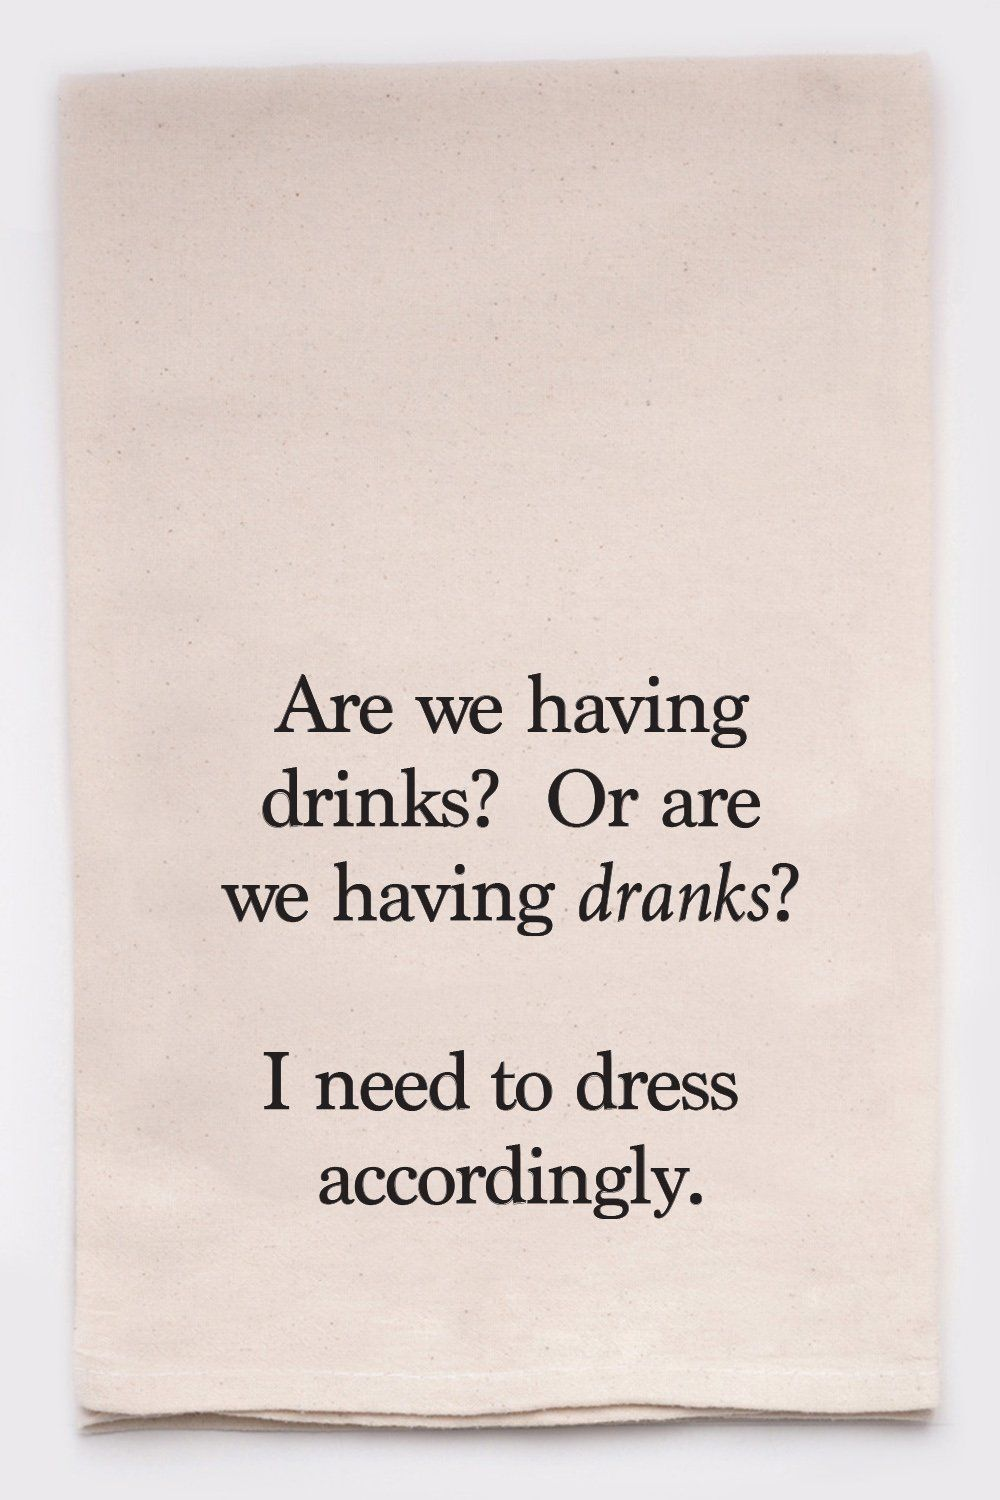 Are We Having Drinks Or Dranks I Need To Dress Accordingly In 2021 Funny Tea Towels Alcohol Quotes Alcohol Quotes Funny